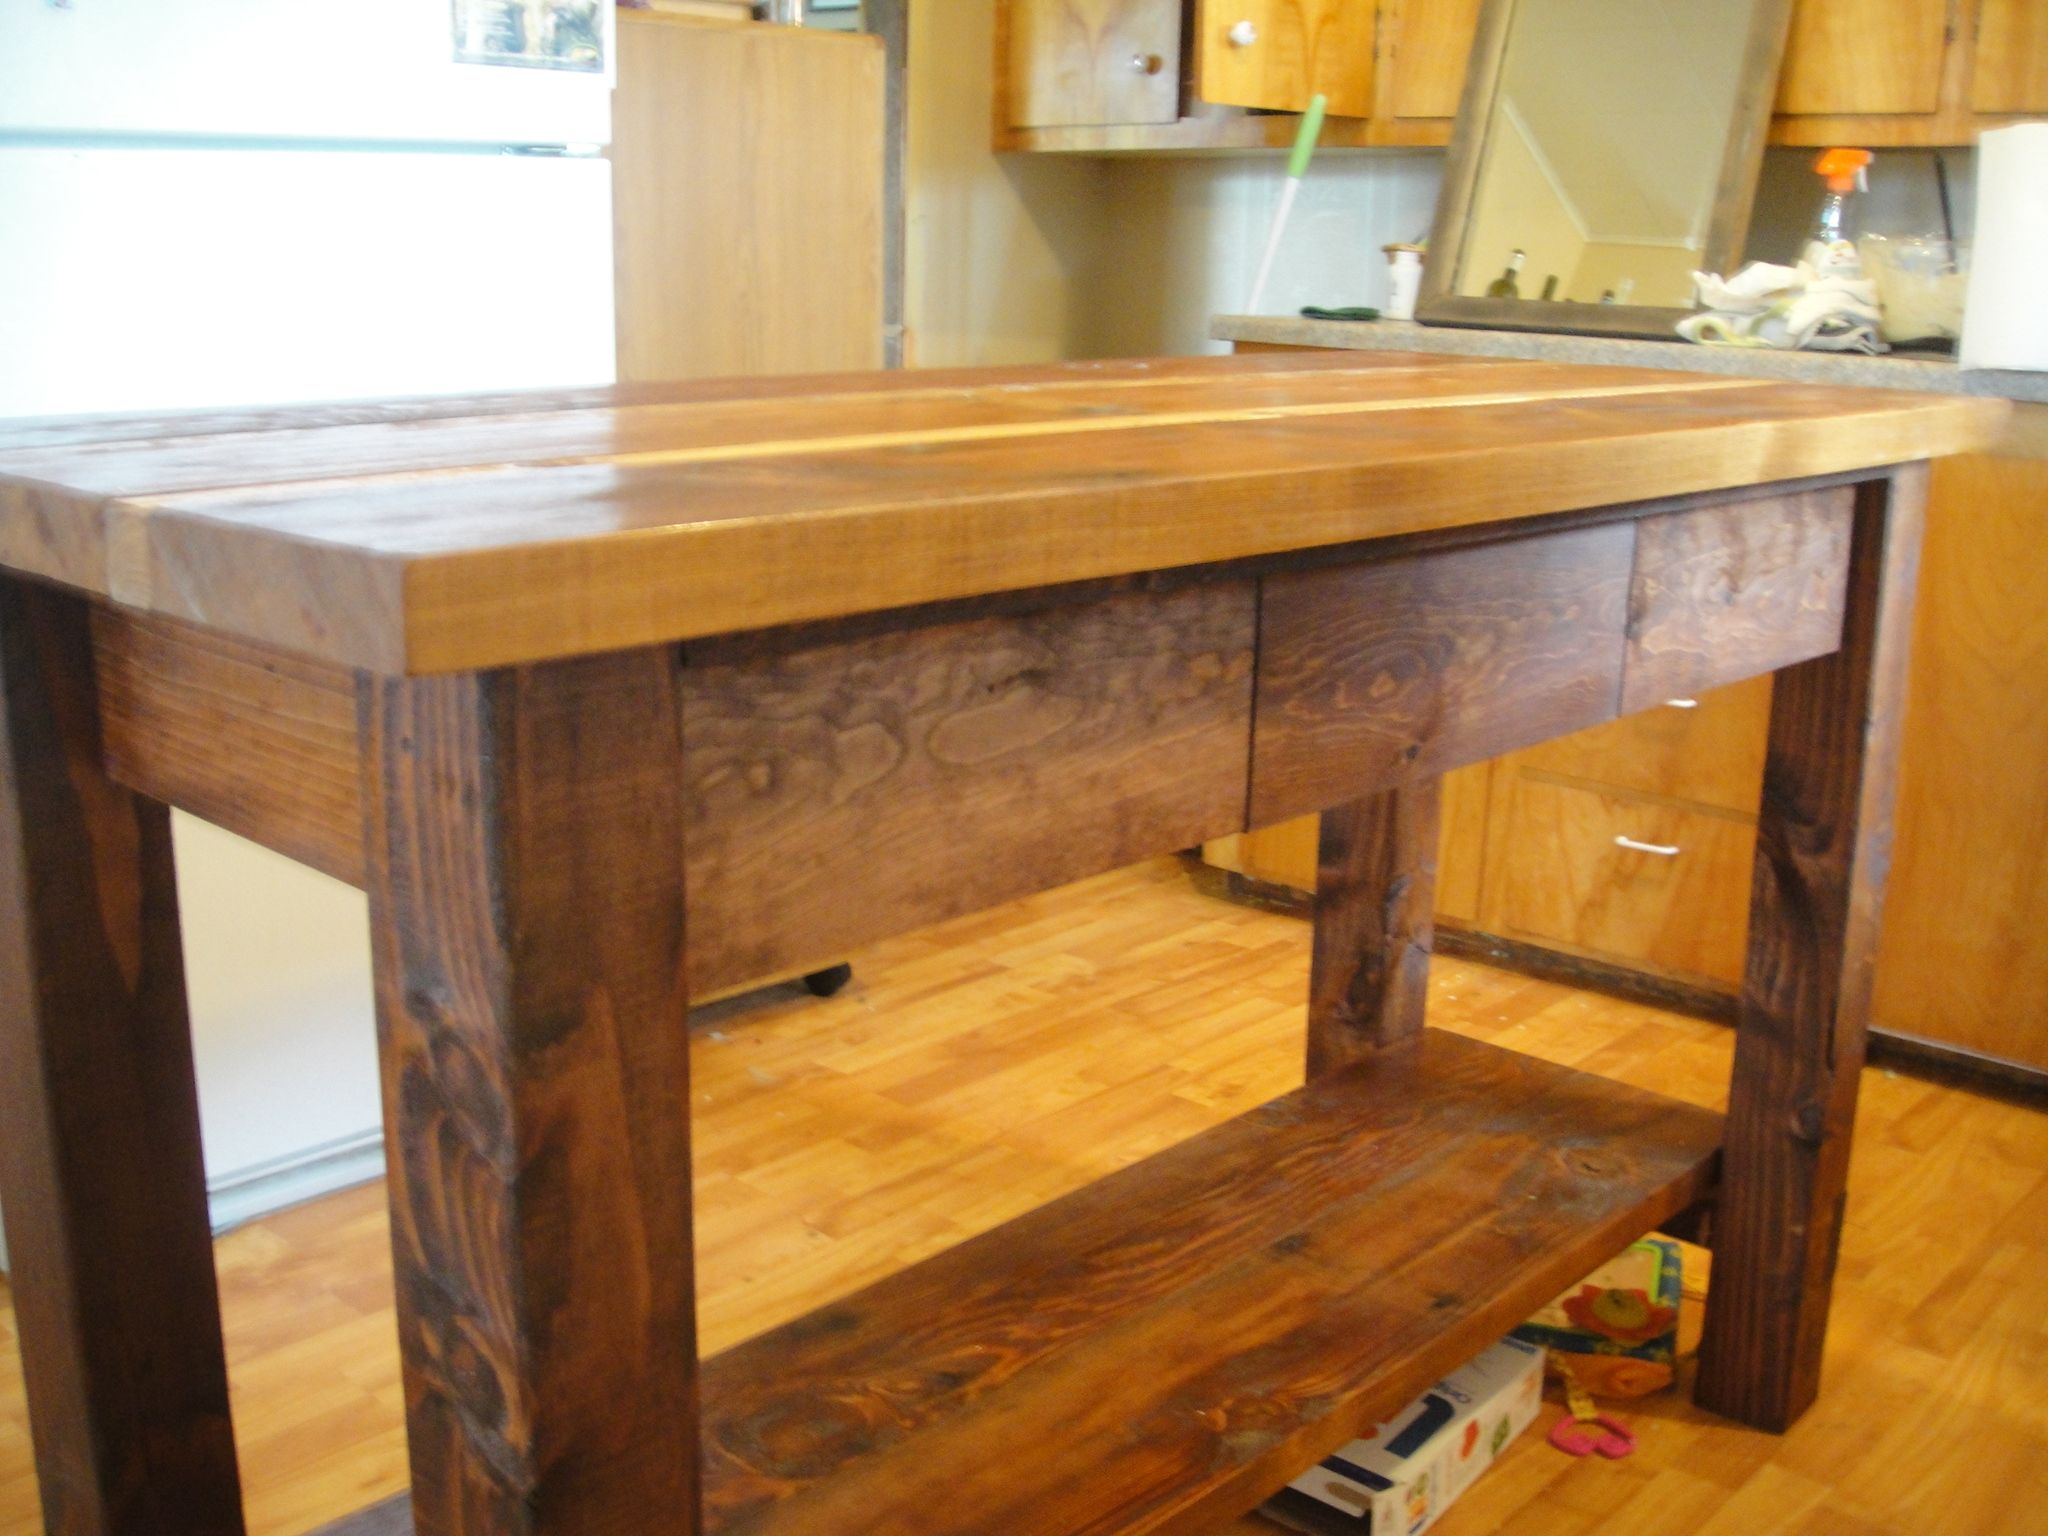 reclaimed wood kitchen island | postedback woods wood | my